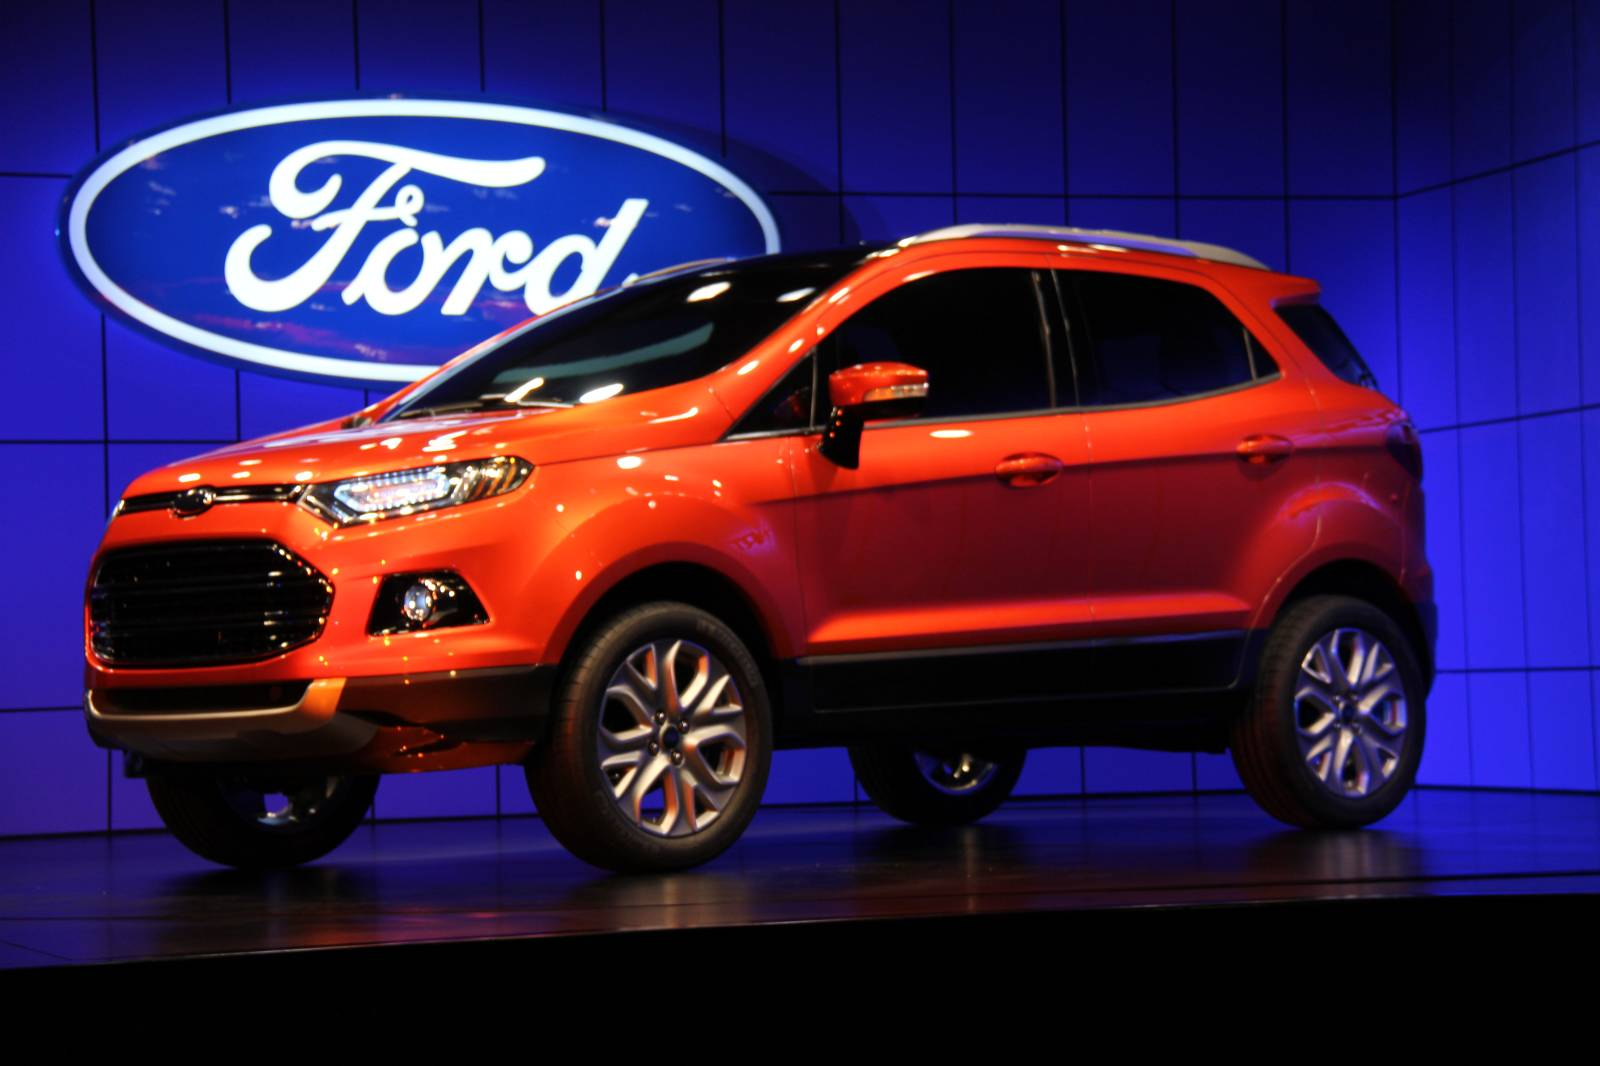 2013 ford ecosport crossover launches at delhi motor show. Black Bedroom Furniture Sets. Home Design Ideas